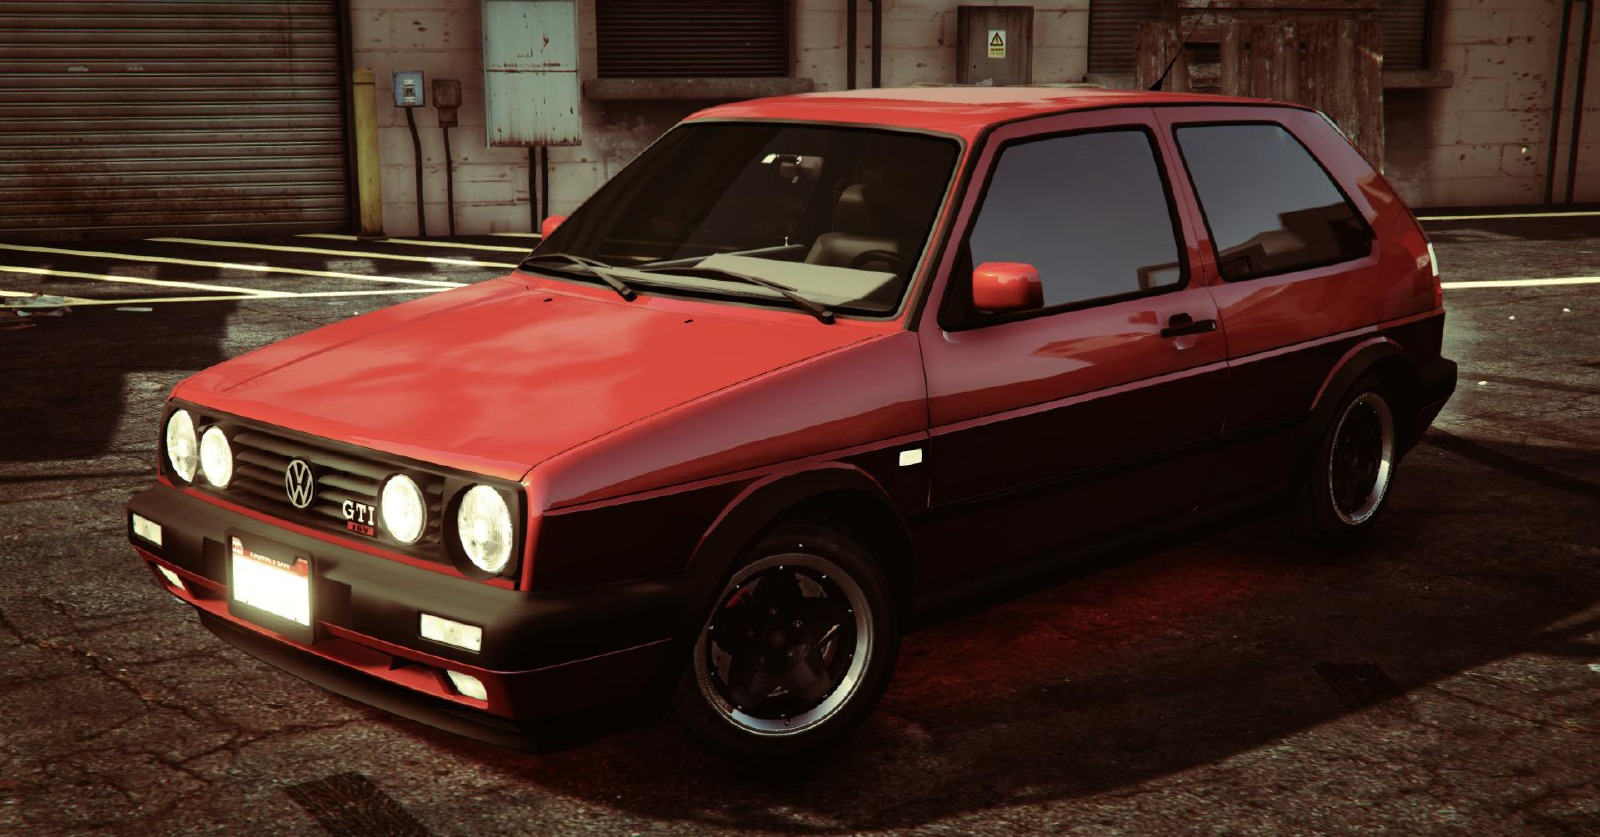 volkswagen golf mk2 vehicules pour gta v sur gta modding. Black Bedroom Furniture Sets. Home Design Ideas